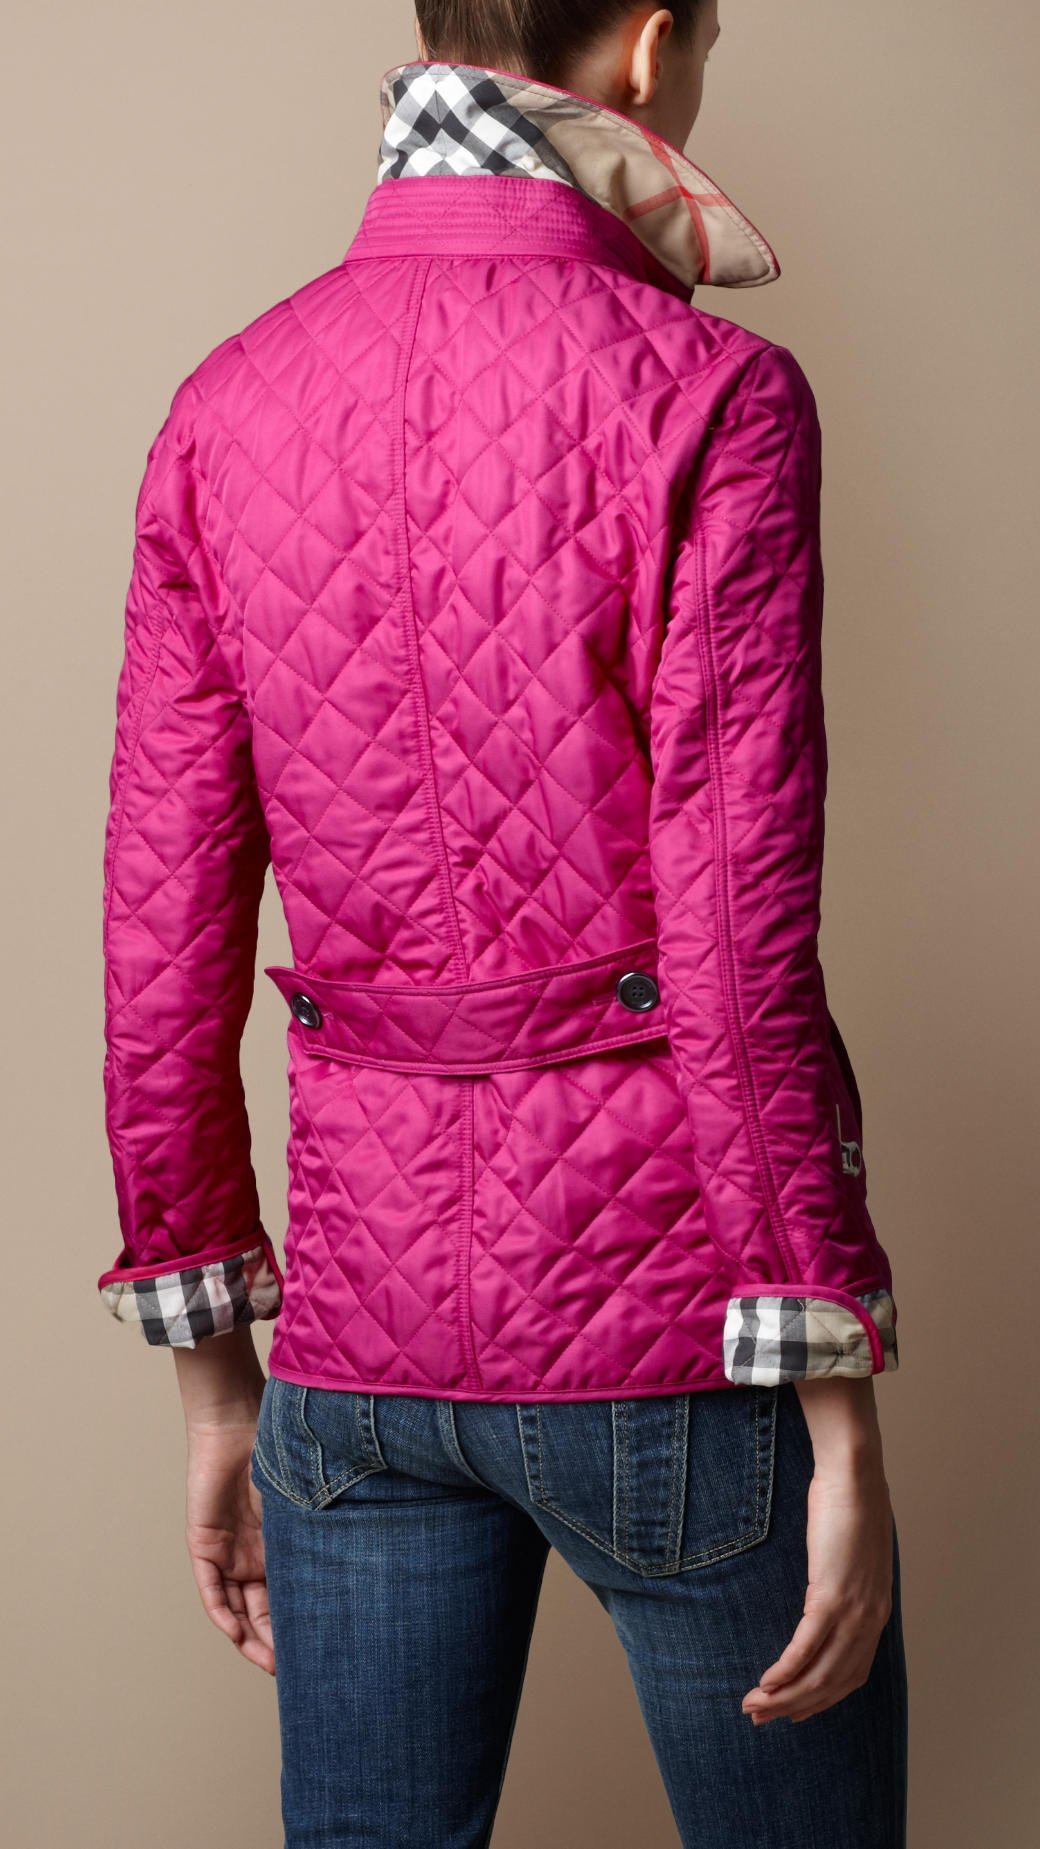 Burberry brit Cinched Waist Quilted Jacket in Pink | Lyst